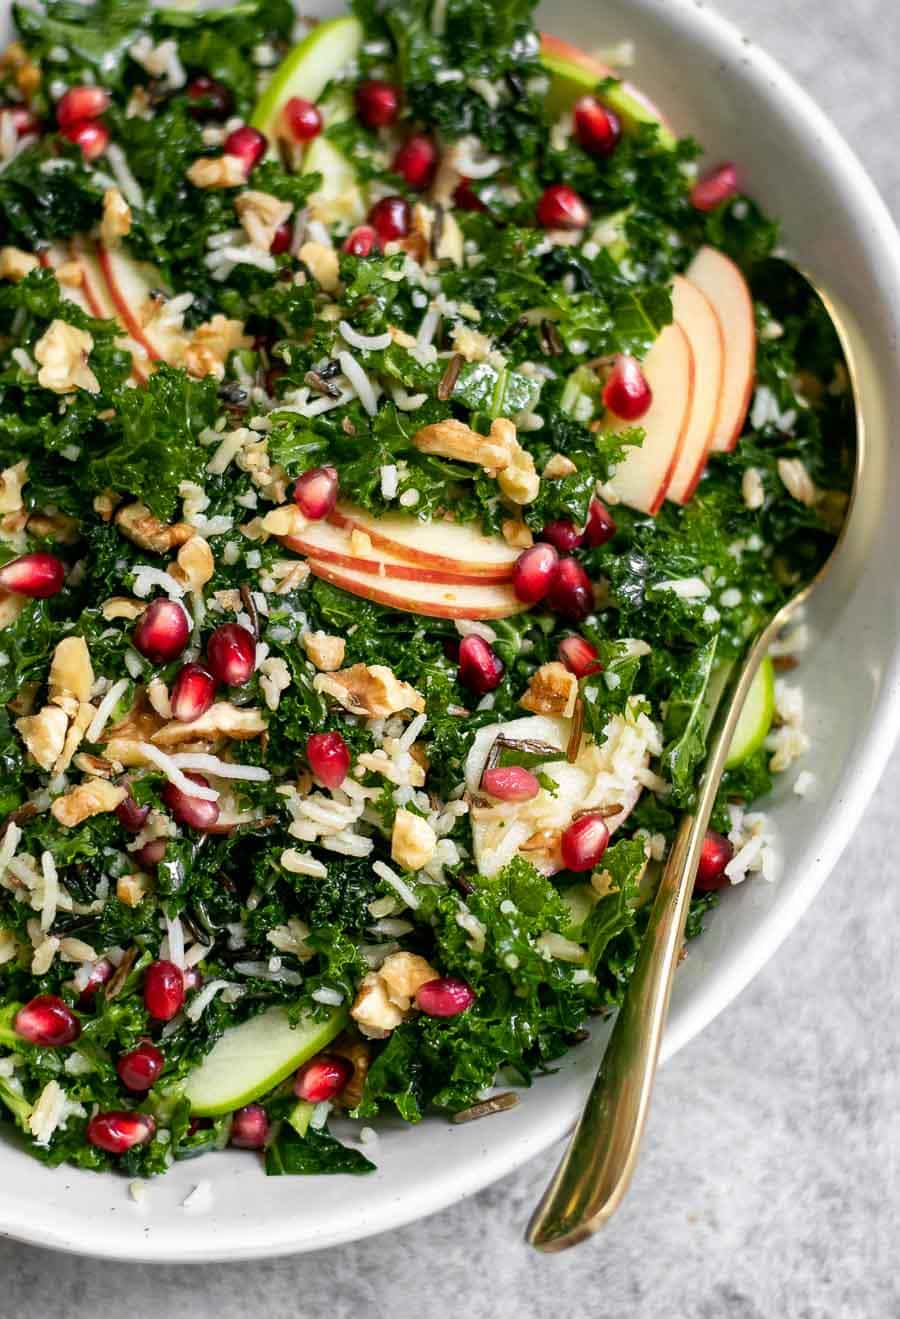 Kale apple salad with a gold spoon on the side.